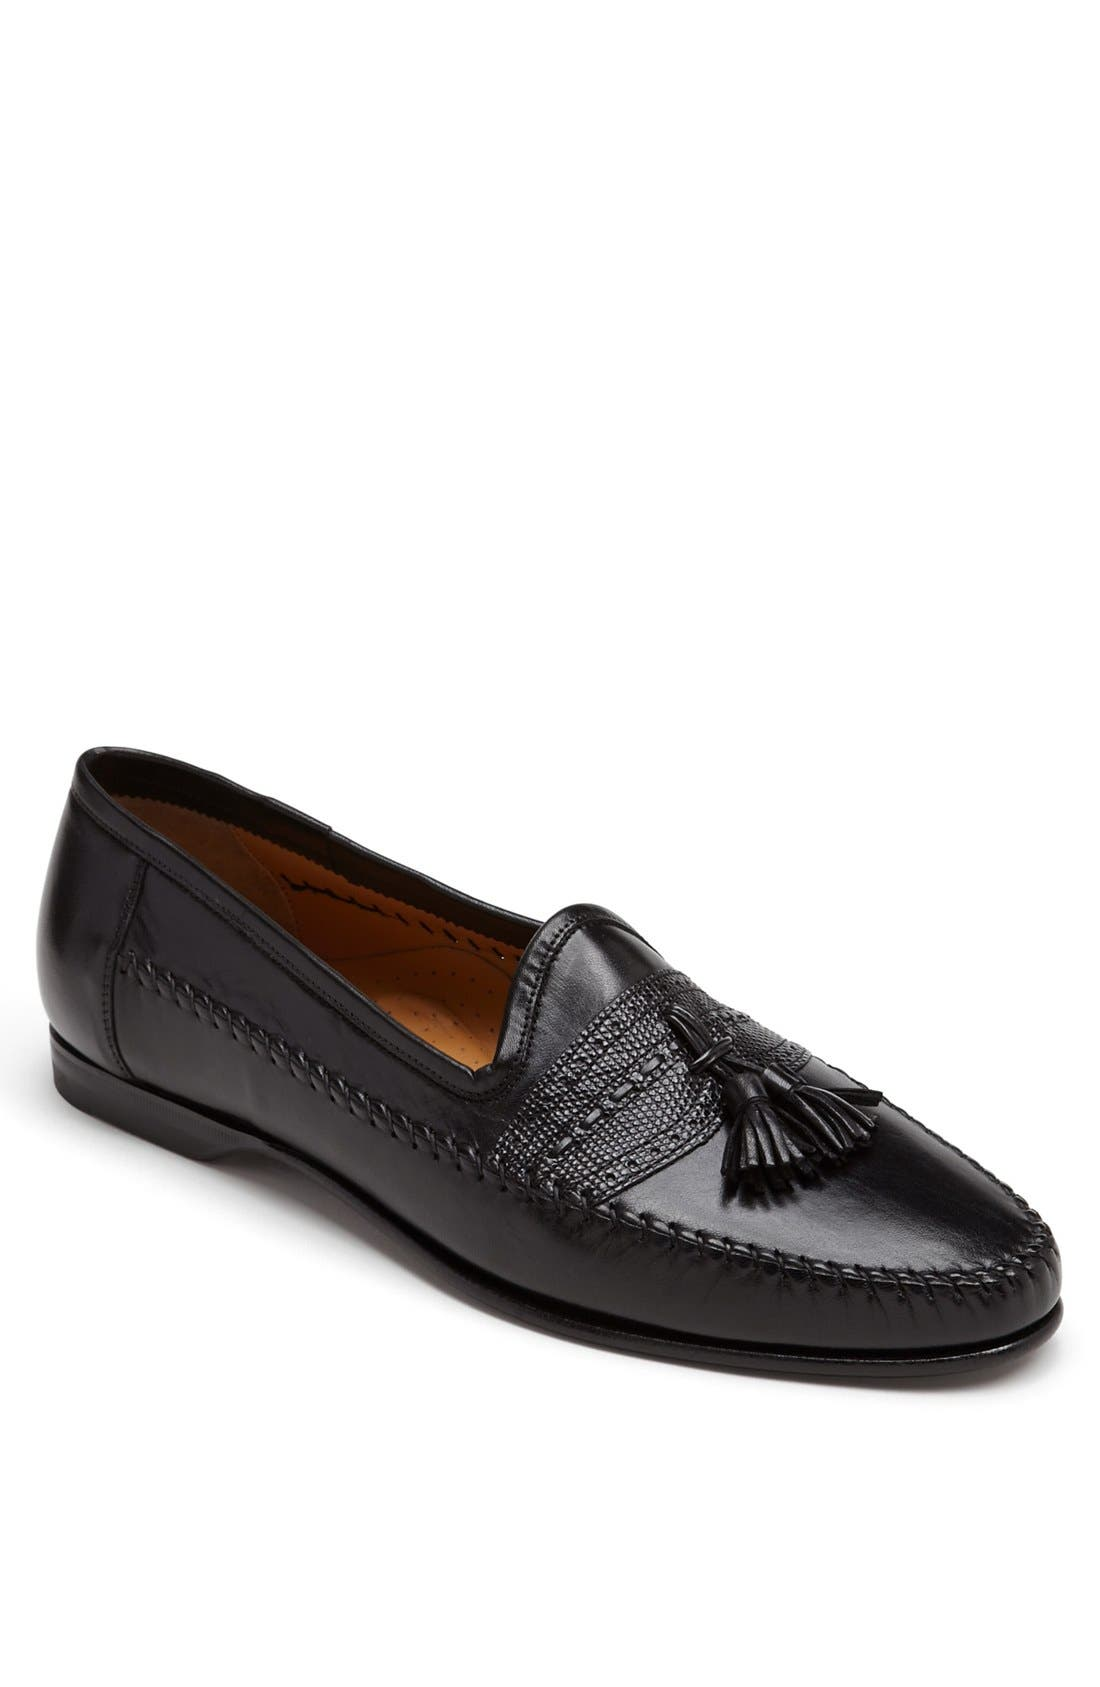 'Hammon' Loafer,                             Main thumbnail 1, color,                             BLK